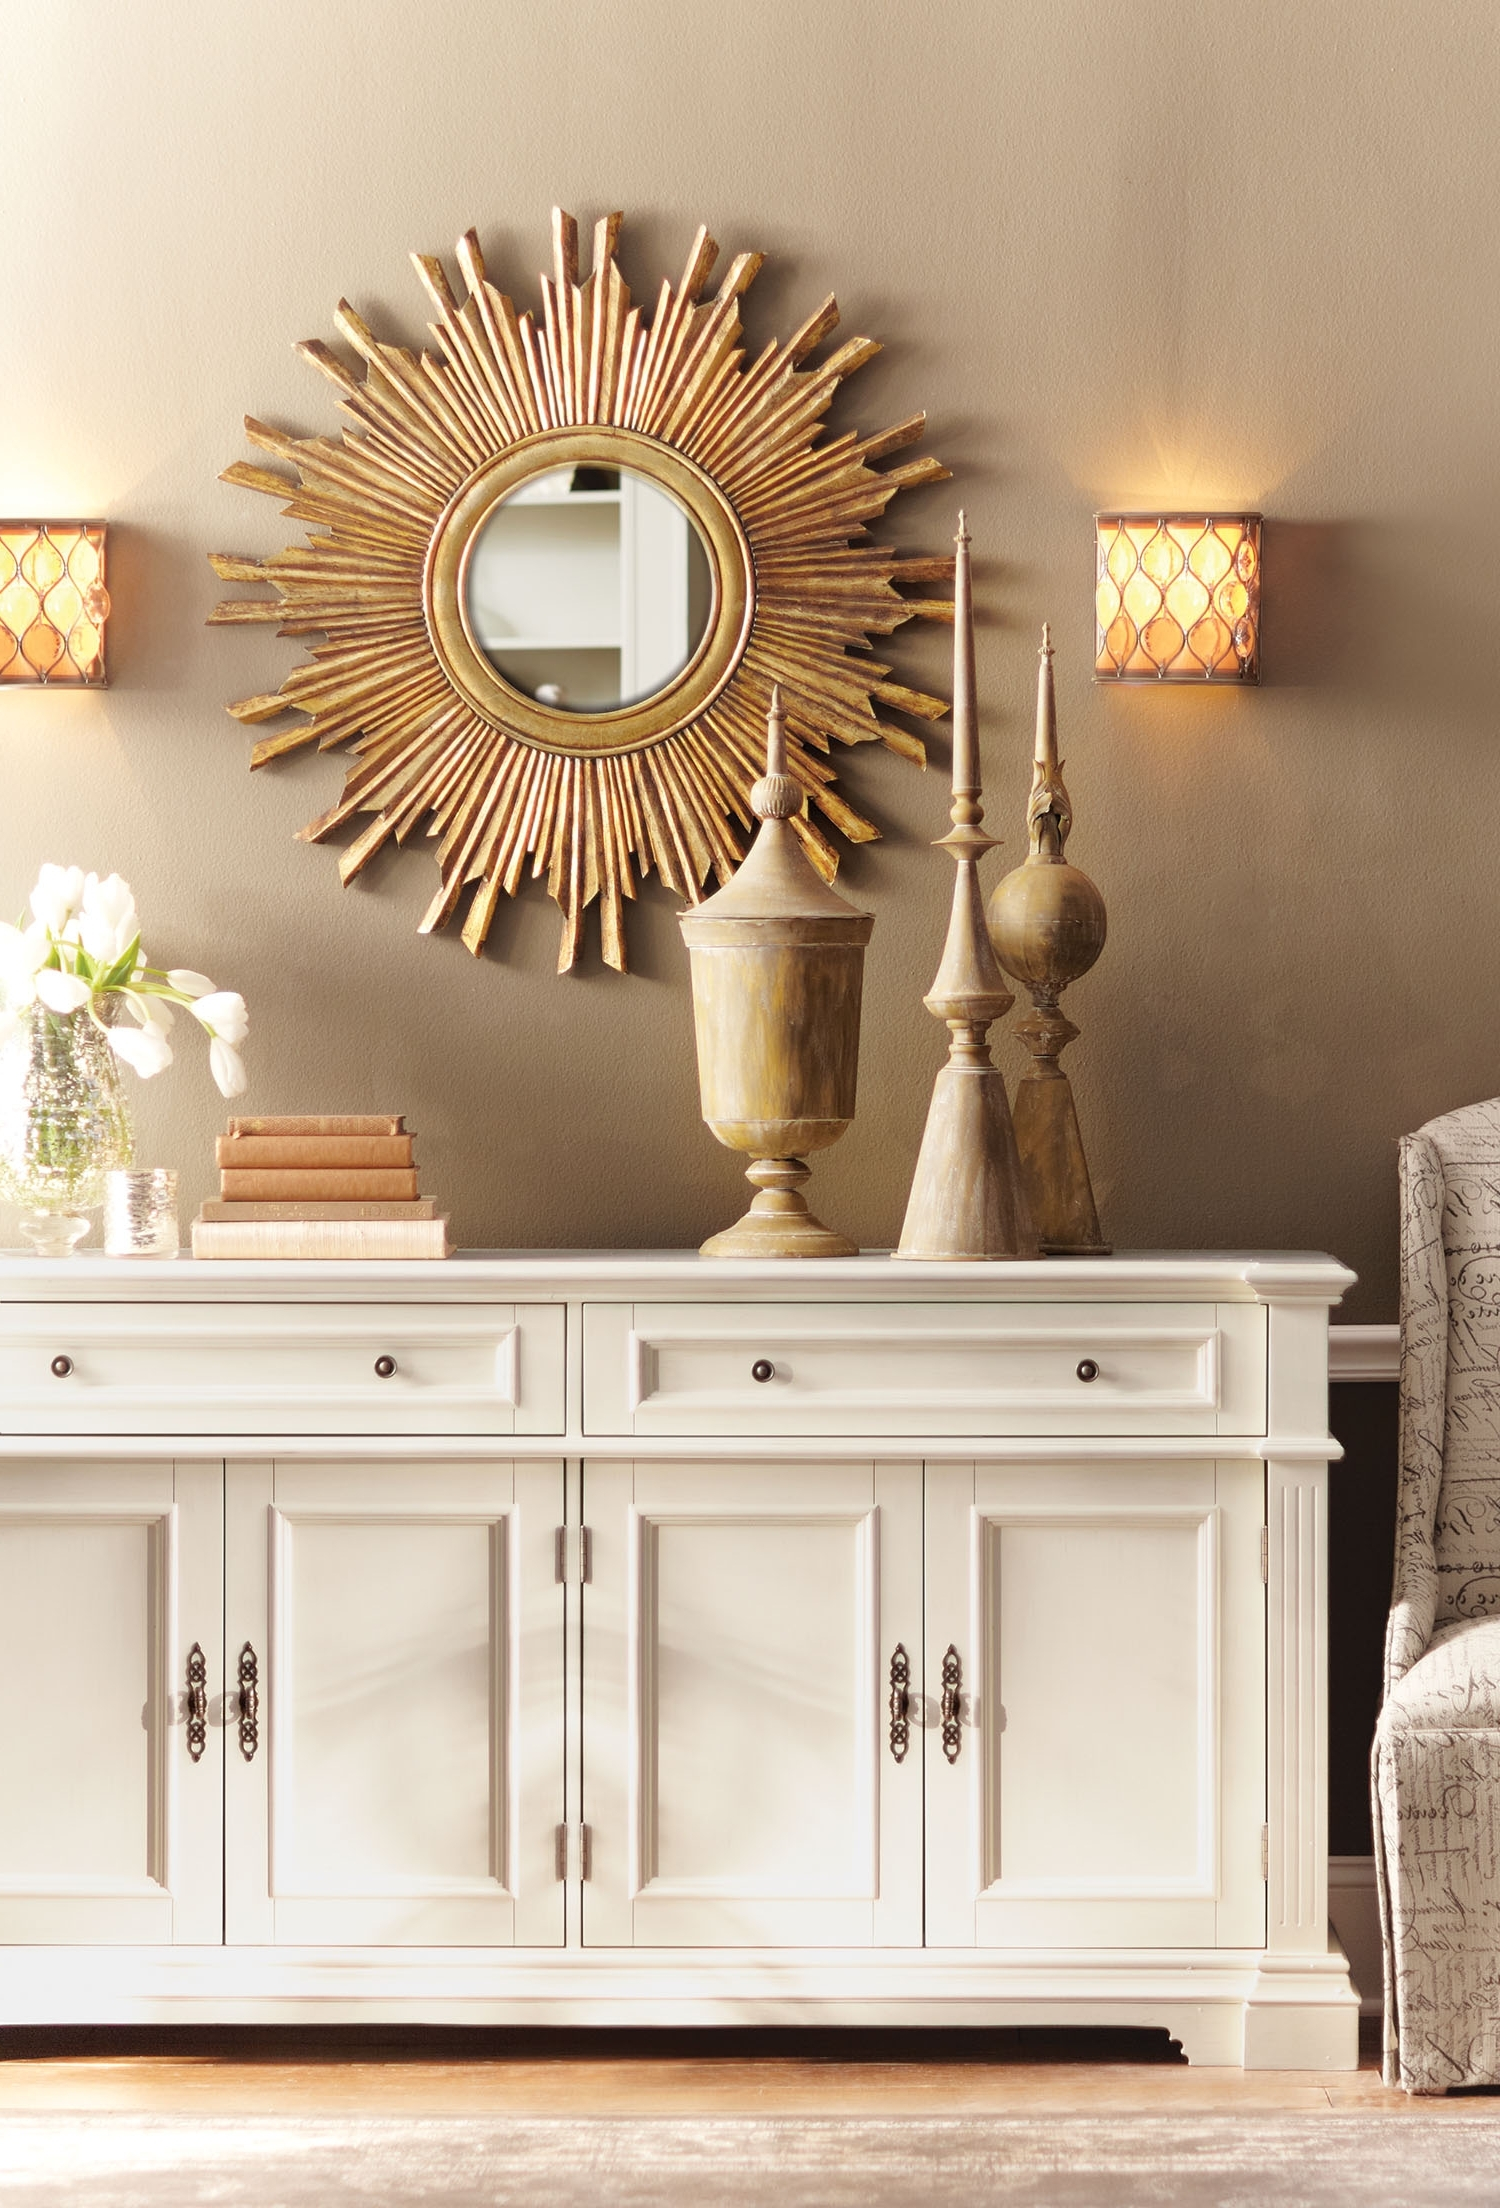 Fashionable Mirrors Wall Accents Within Gorgeous In Gold (View 4 of 15)